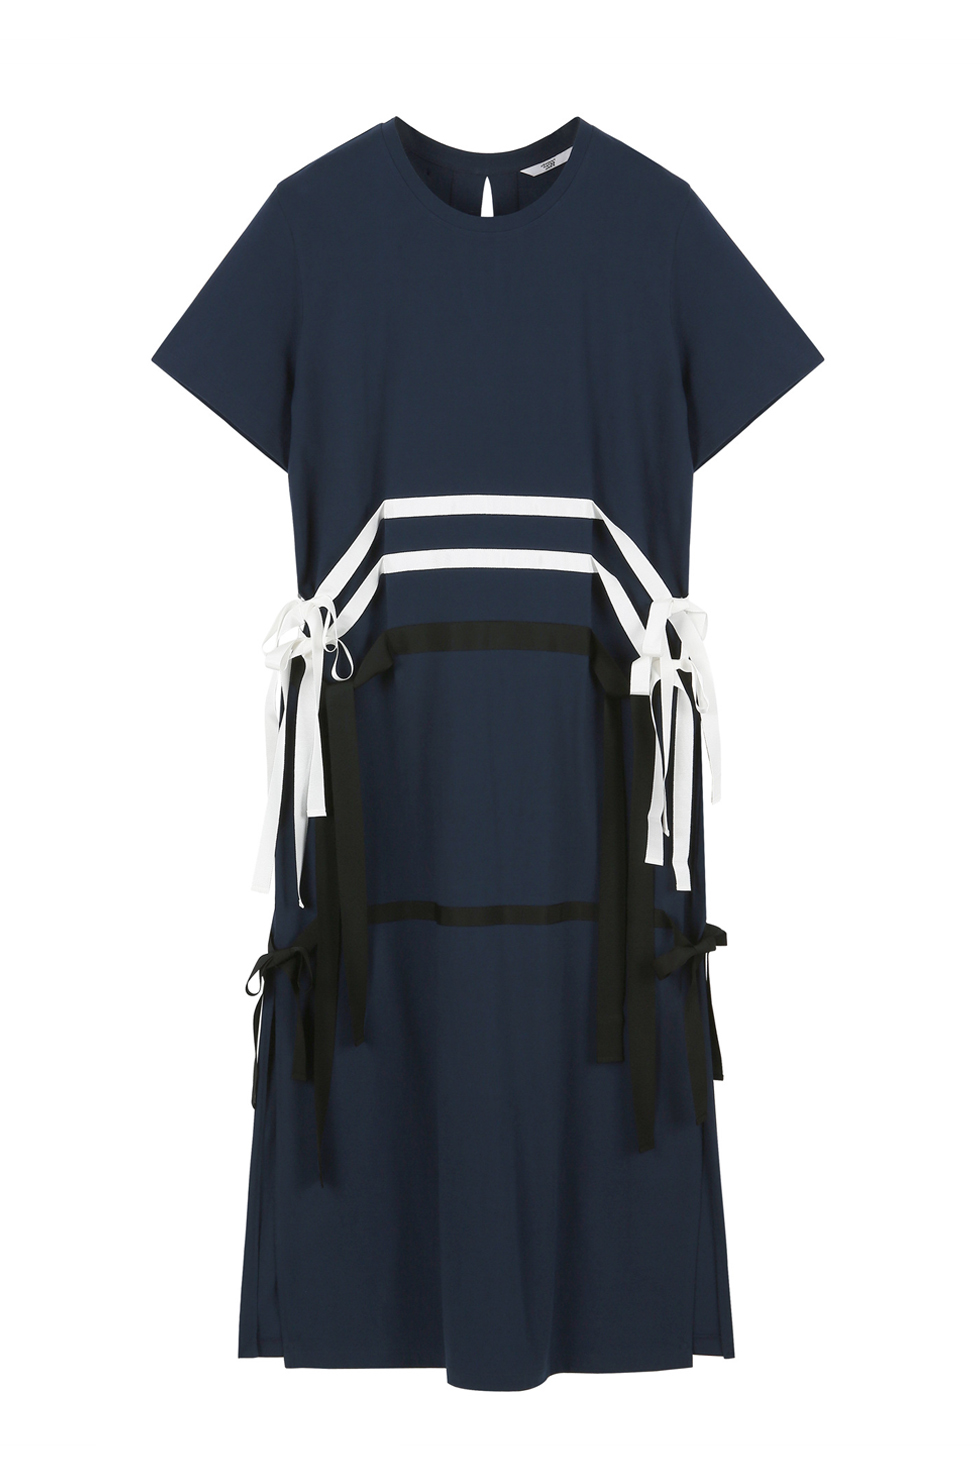 RIBBON TAPE ONE PIECE - NAVY